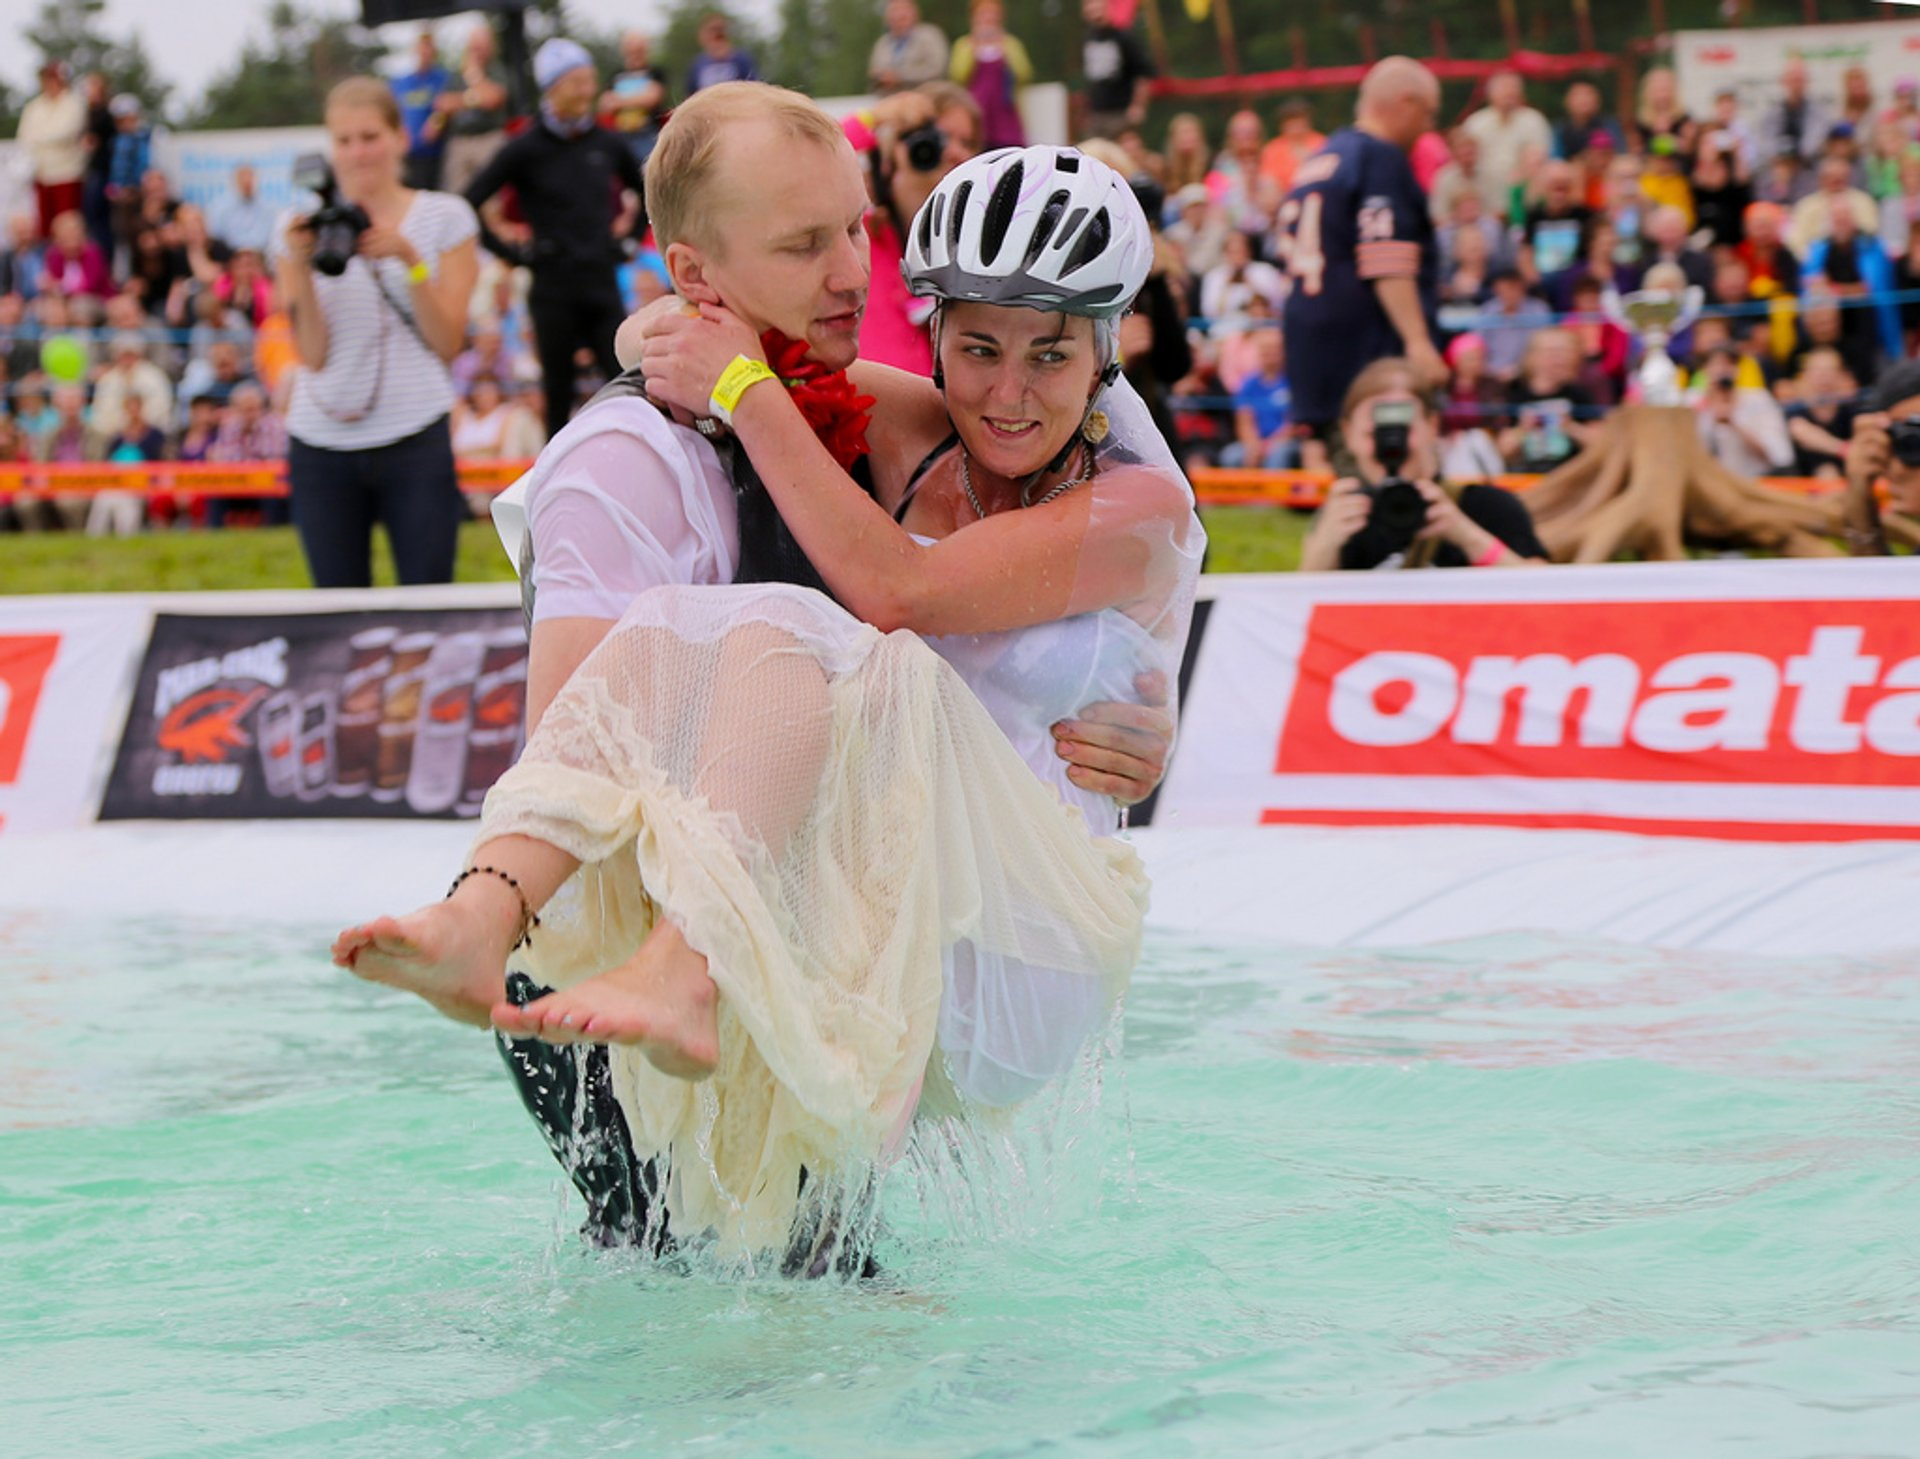 Wife Carrying World Championships in Finland 2020 - Best Time